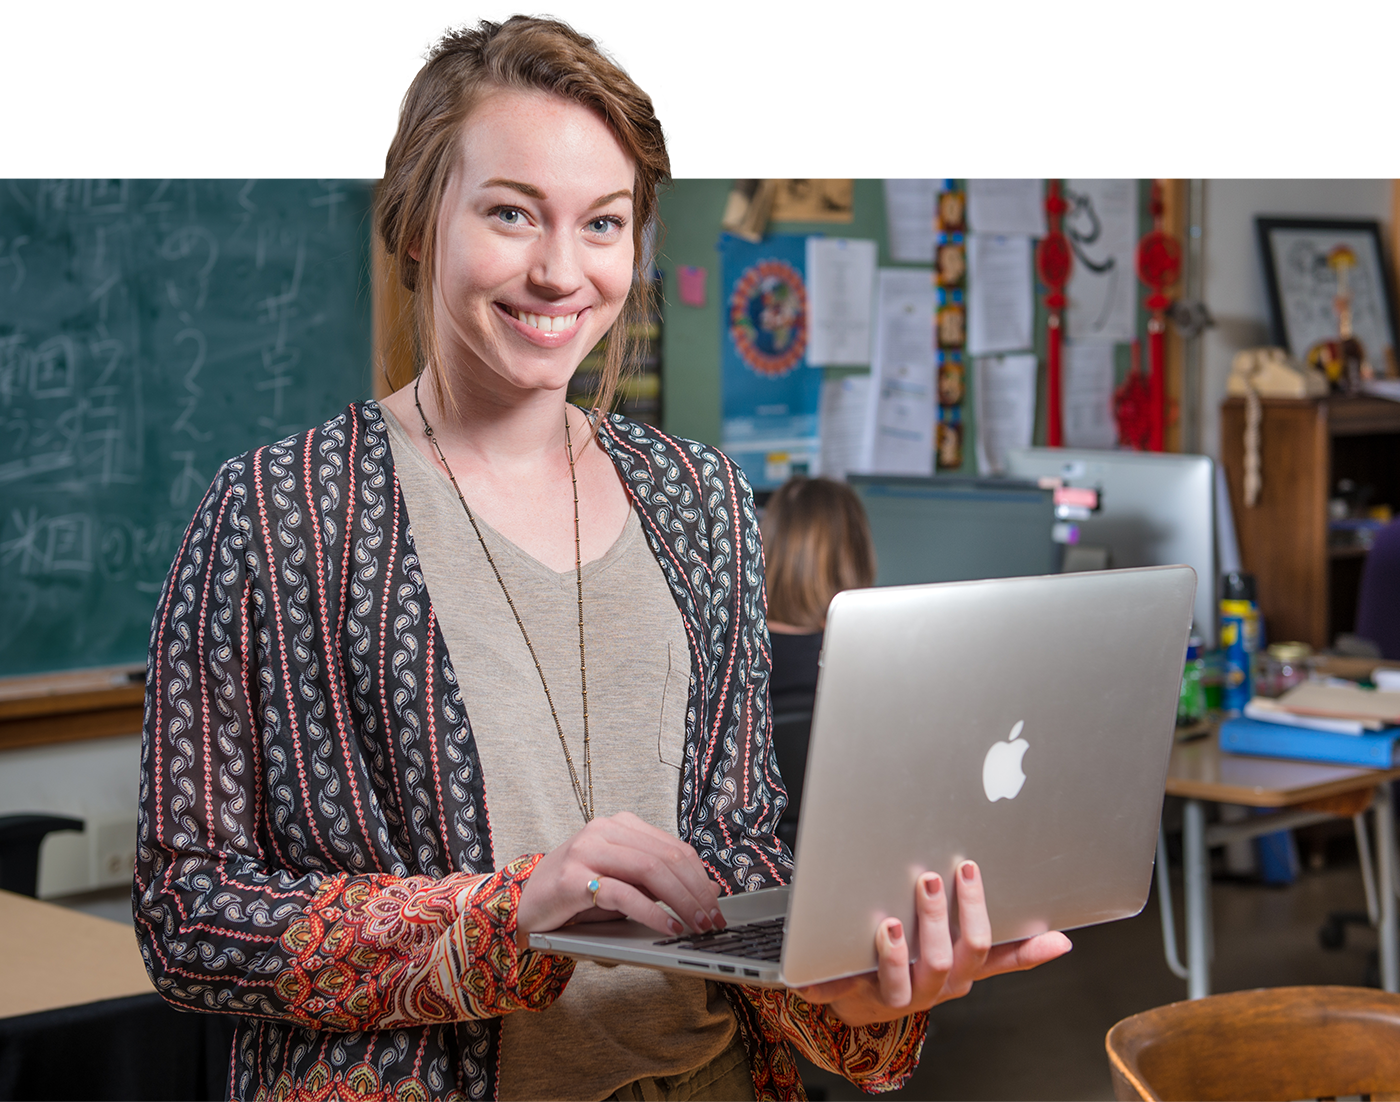 Student holding a laptop smiling at the camera.